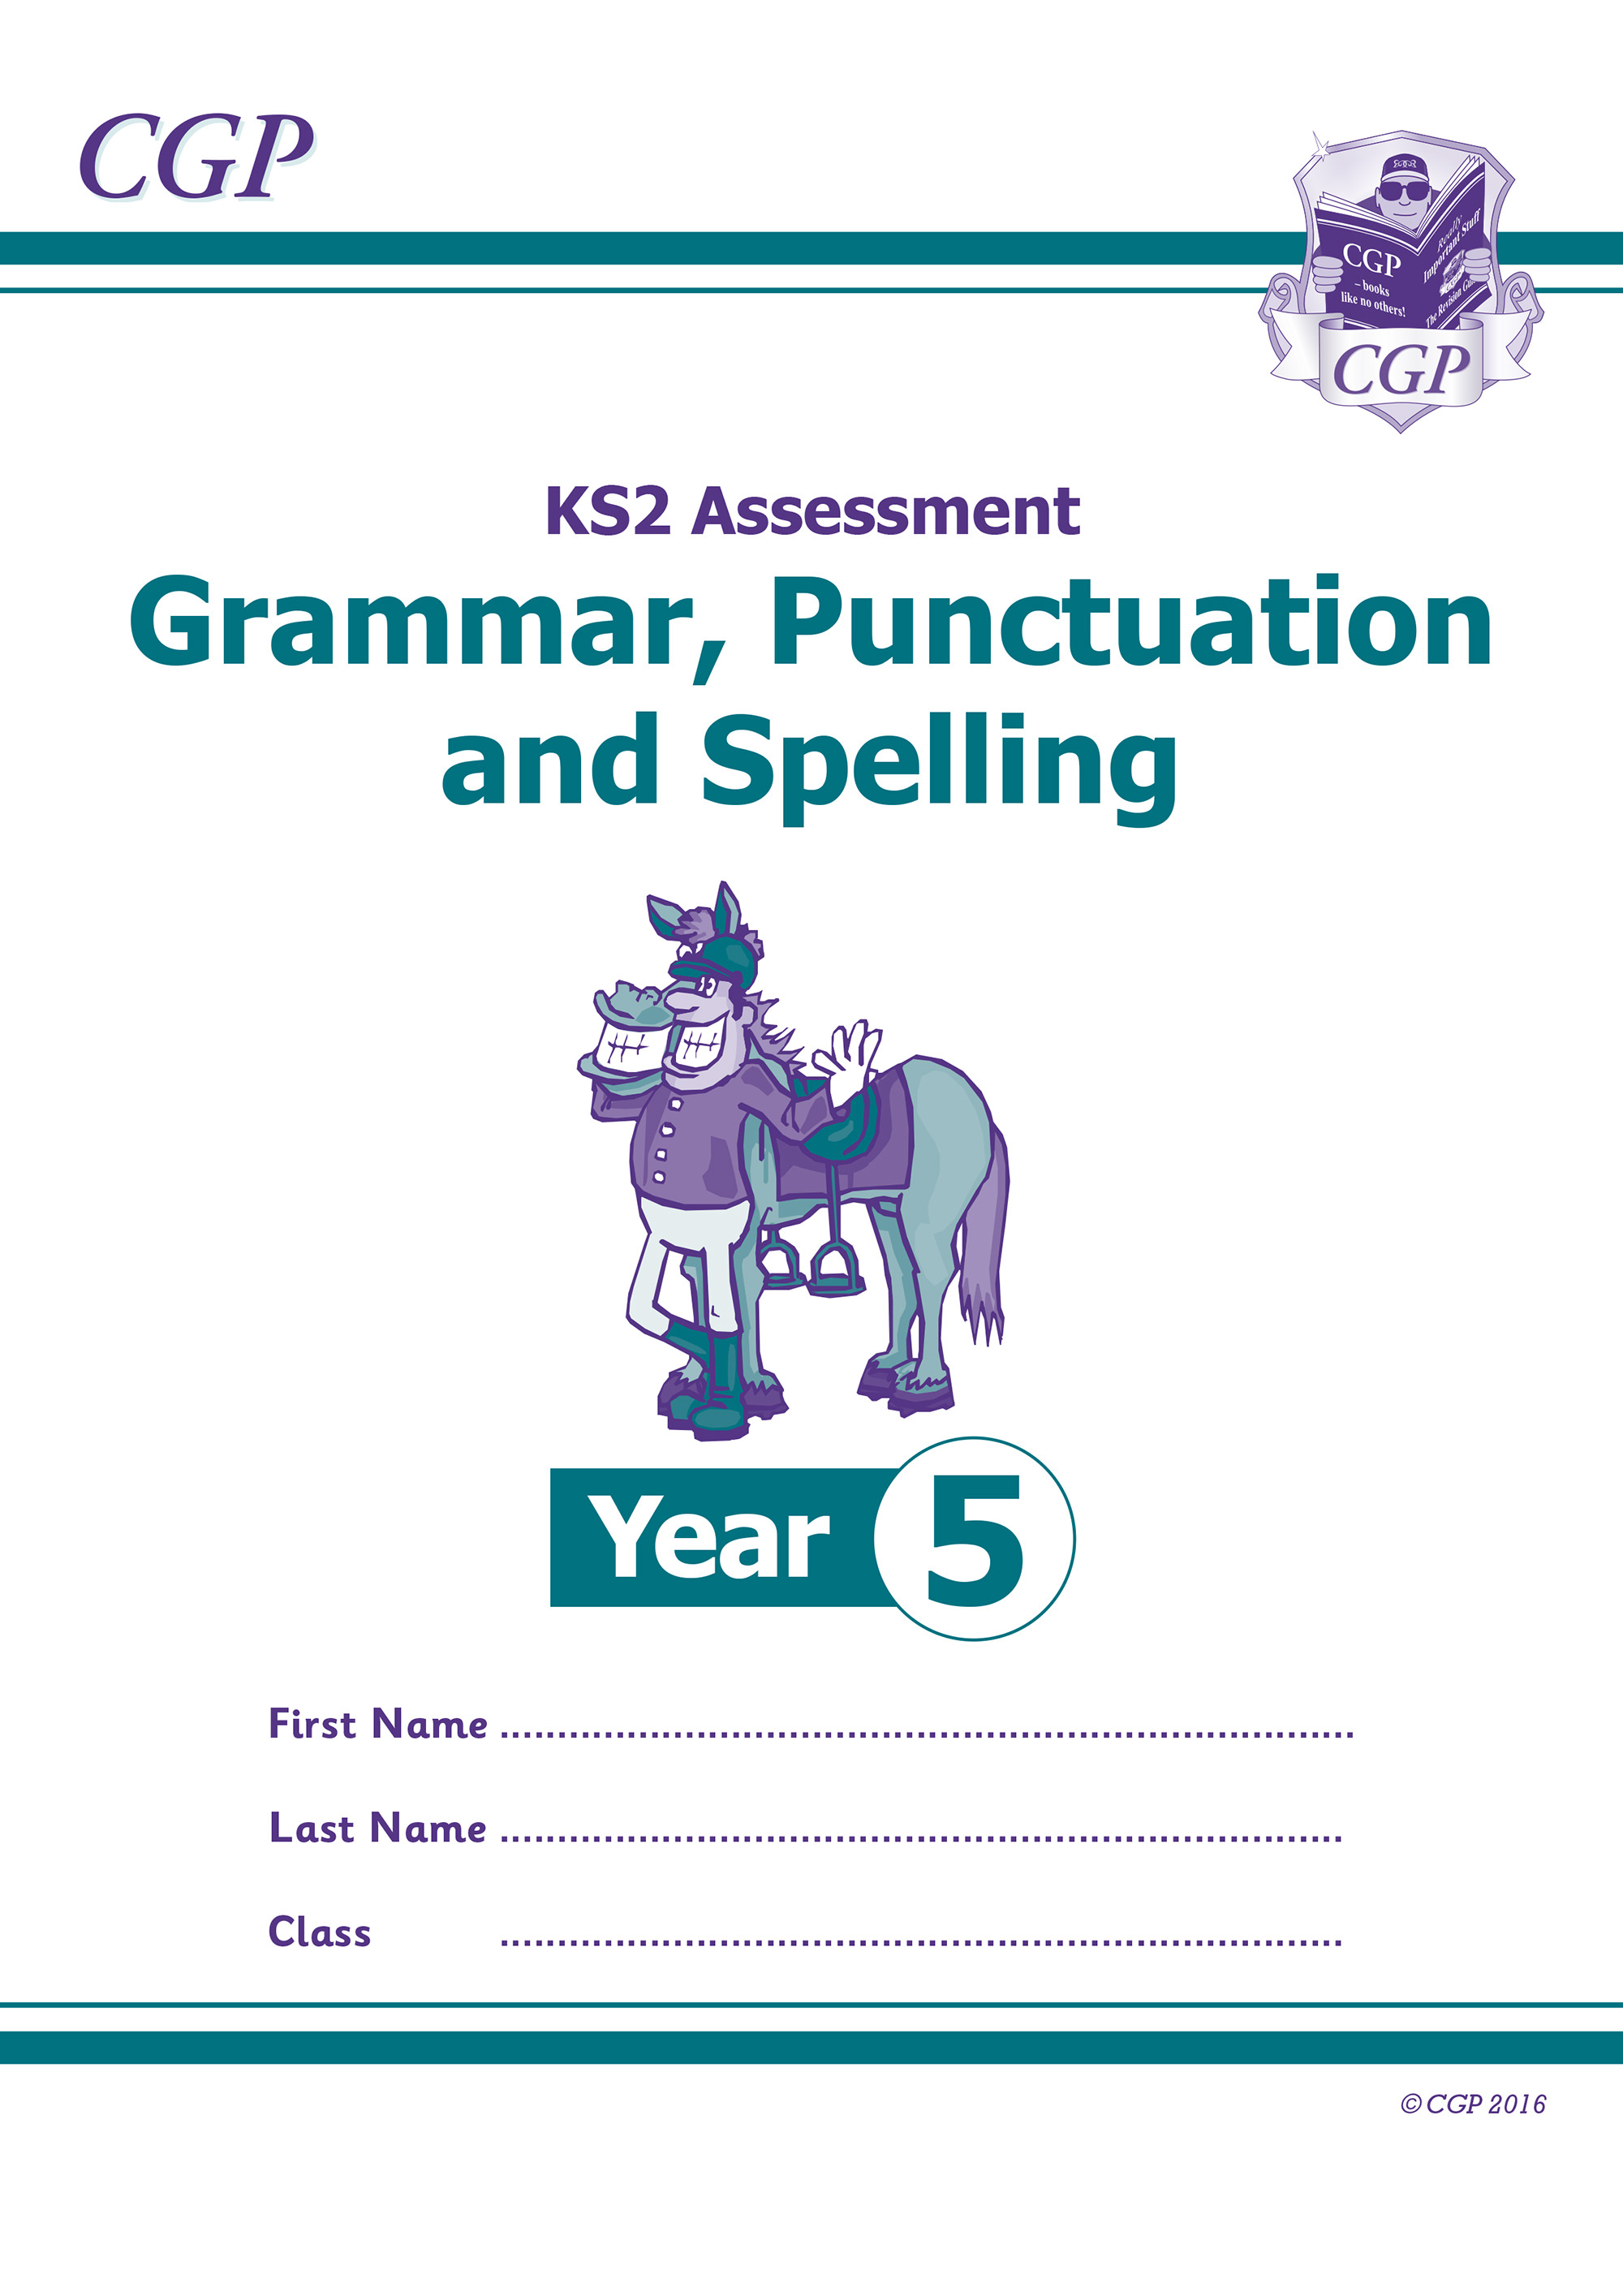 E5GP21 - New KS2 Assessment: Spelling, Punctuation & Grammar - Year 5 Test